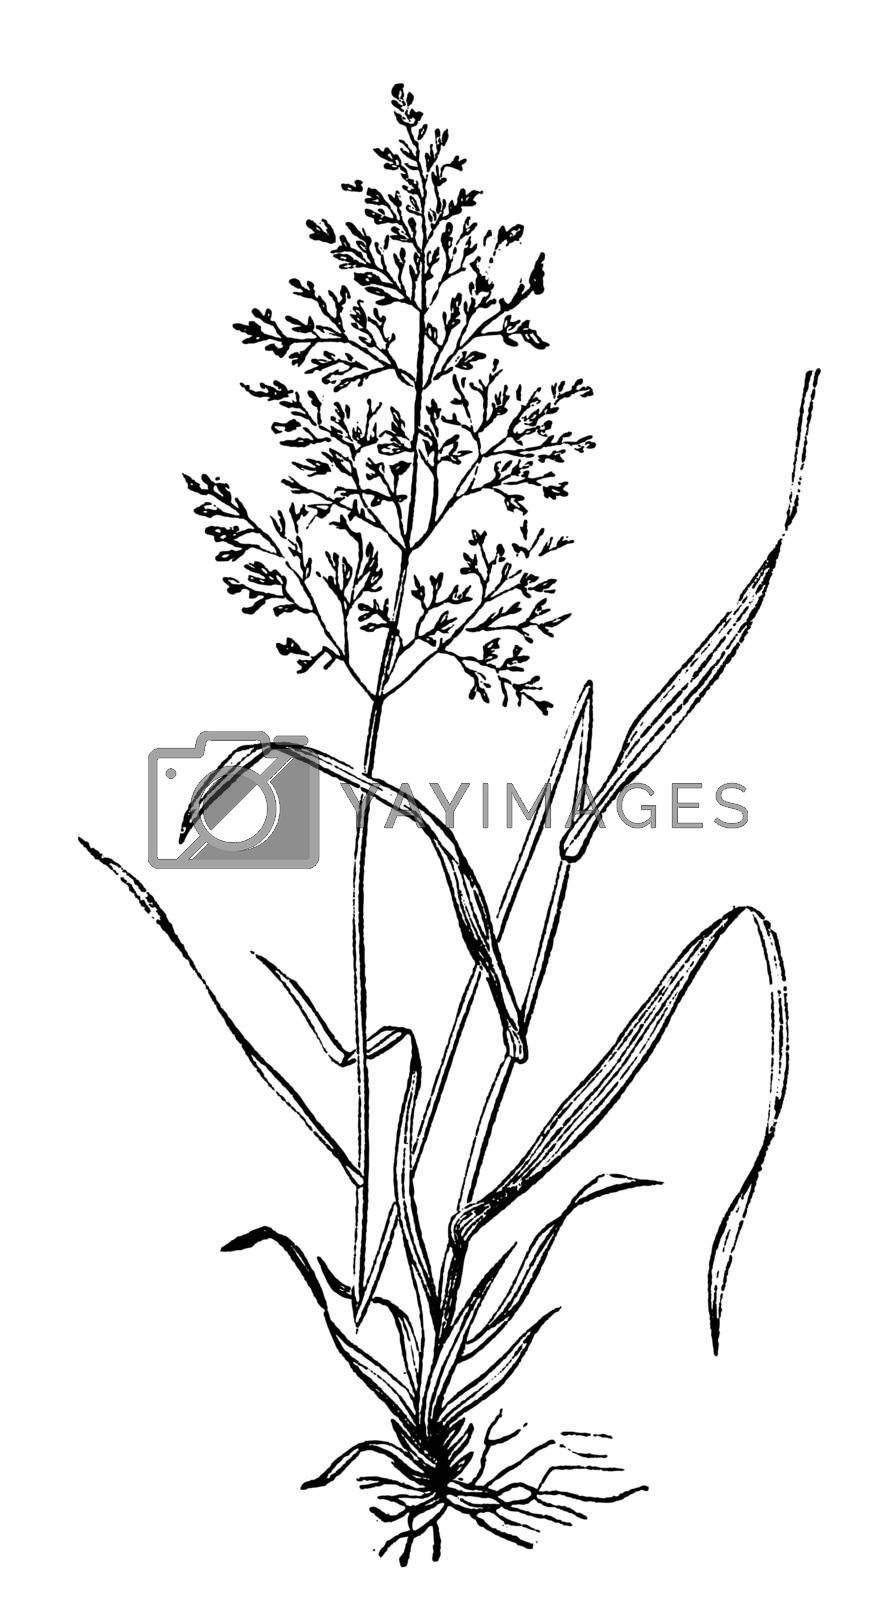 Redtop or Browntop grass, or Agnostis vulgaris or Capillaris engraving. Old engraved illustration of common grass, also called Common Bent and Colonial bent. Widely used as pasture.